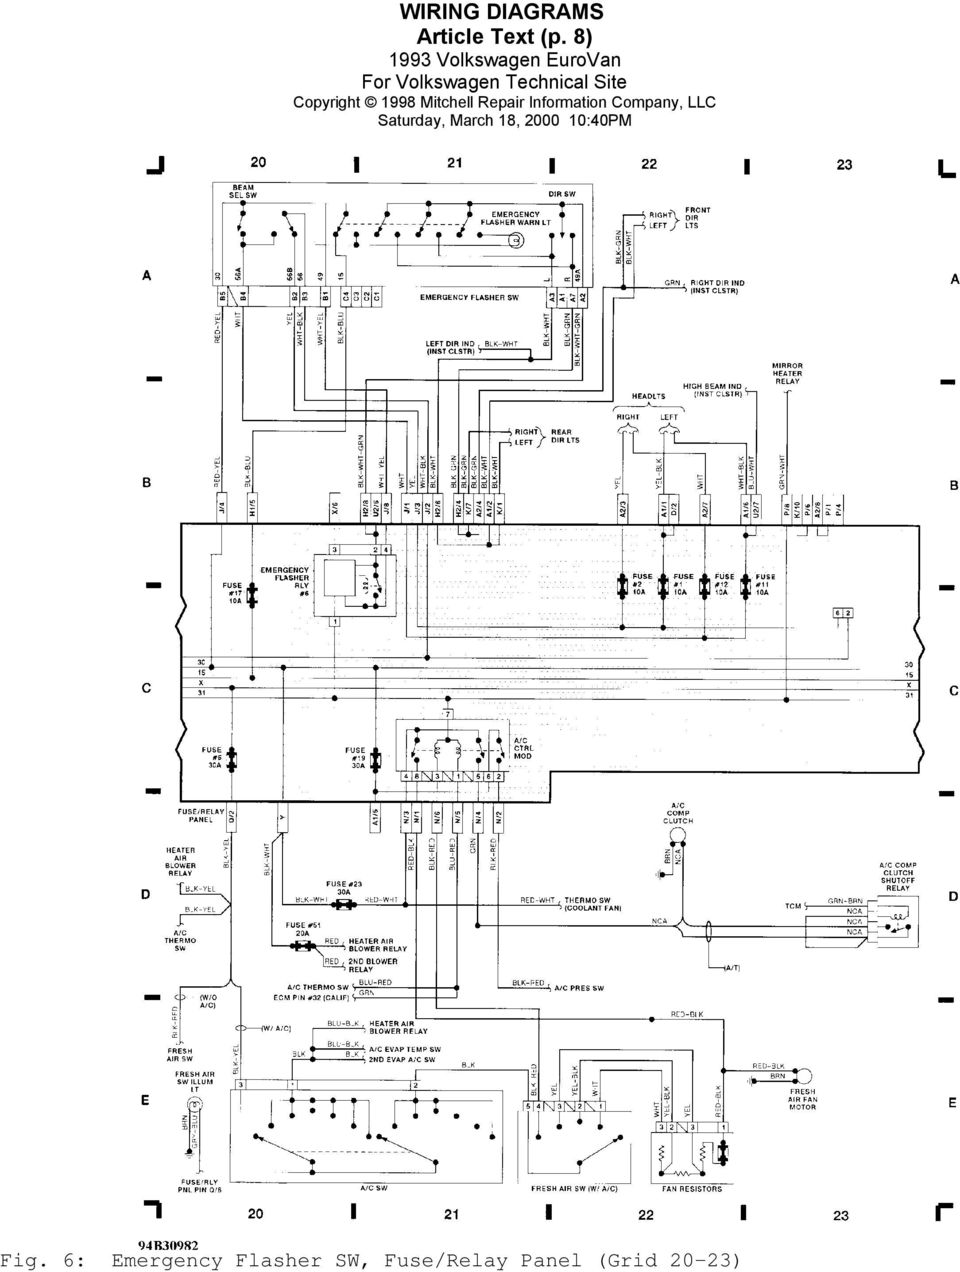 1993 Wiring Diagrams Volkswagen Eurovan G L 2000 B Diagram 6 Emergency